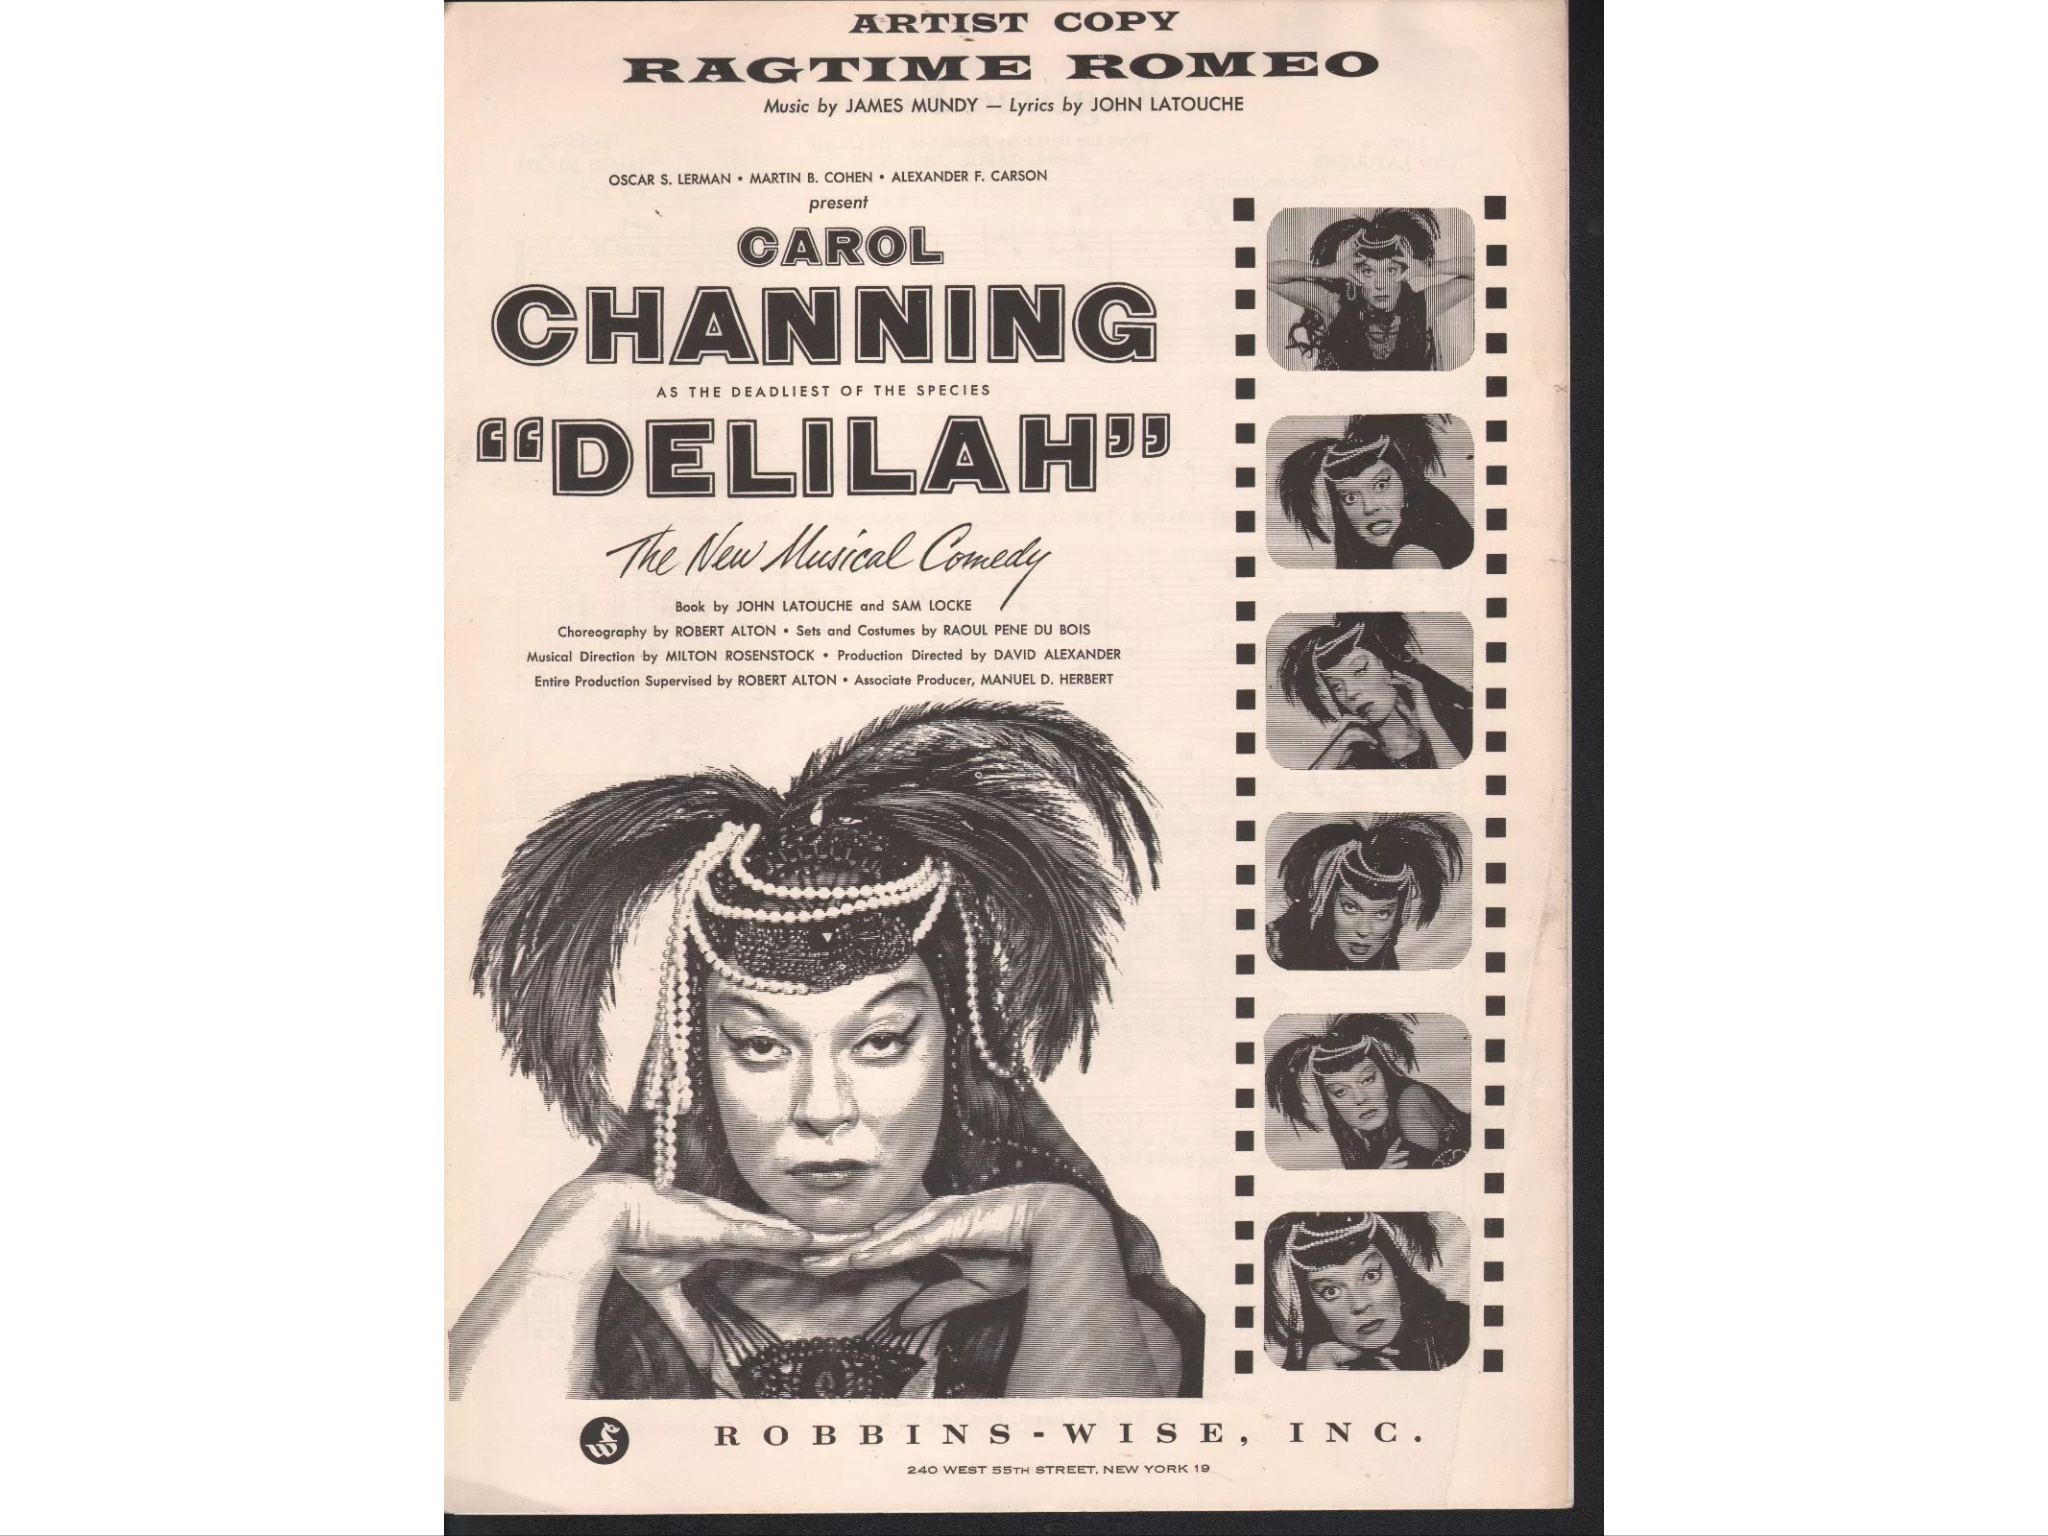 carol channing as queen of the silent screen in